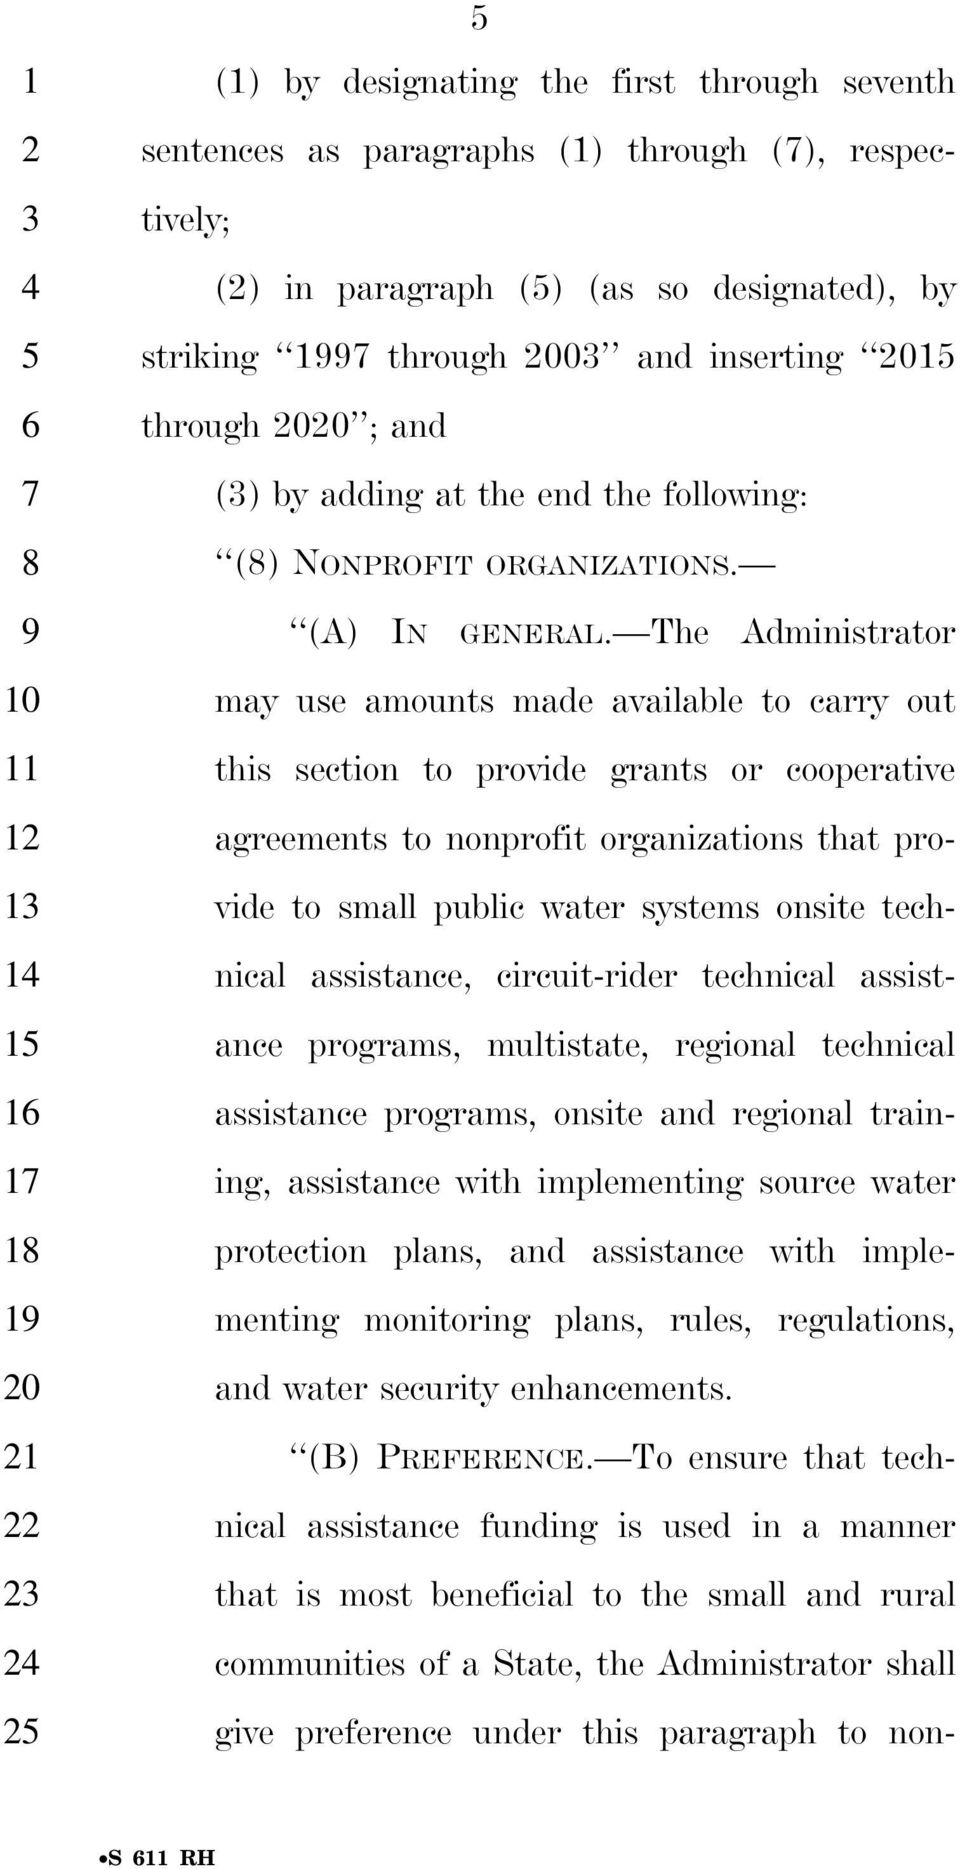 The Administrator may use amounts made available to carry out this section to provide grants or cooperative agreements to nonprofit organizations that provide to small public water systems onsite